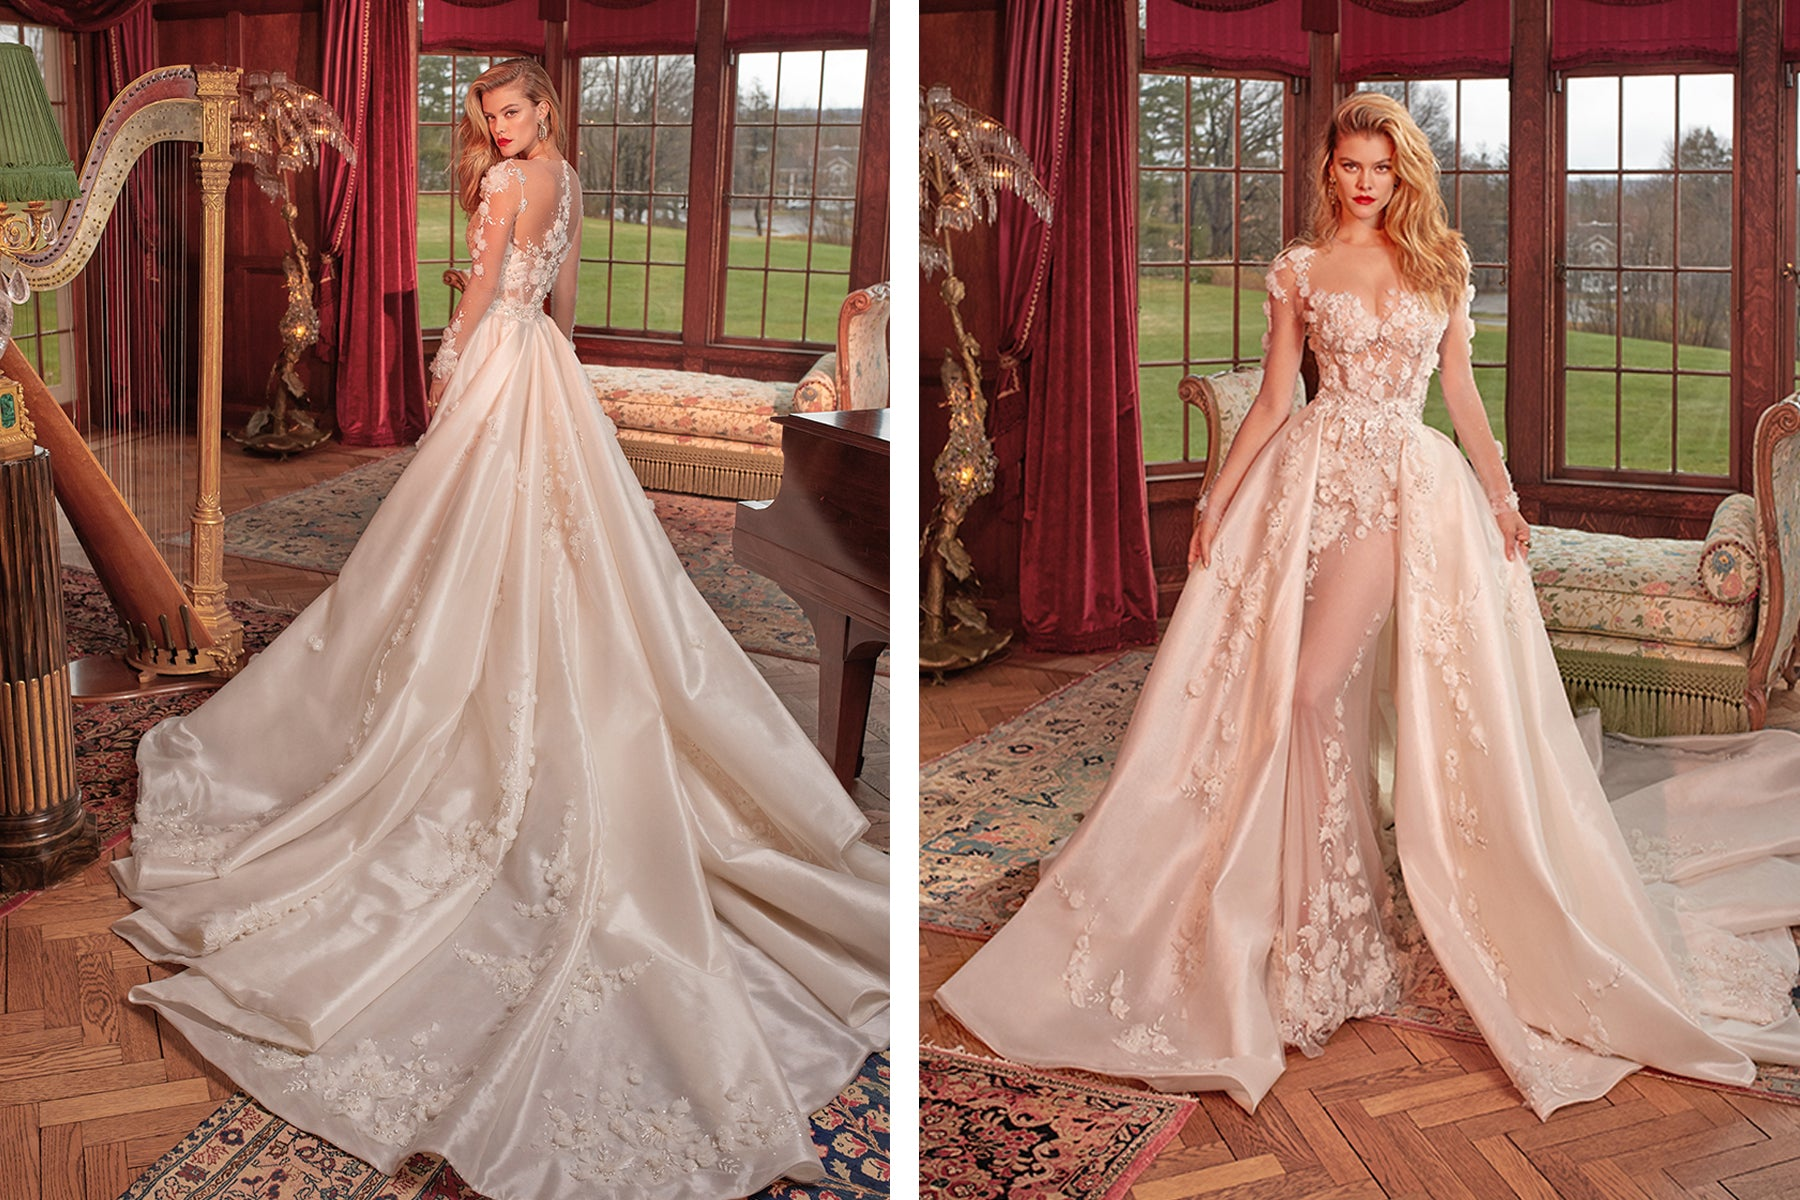 Eternal_Bridal_Wedding_Dress_Galia_Lahav_Haute_Couture_Queen_of_Hearts_Thea